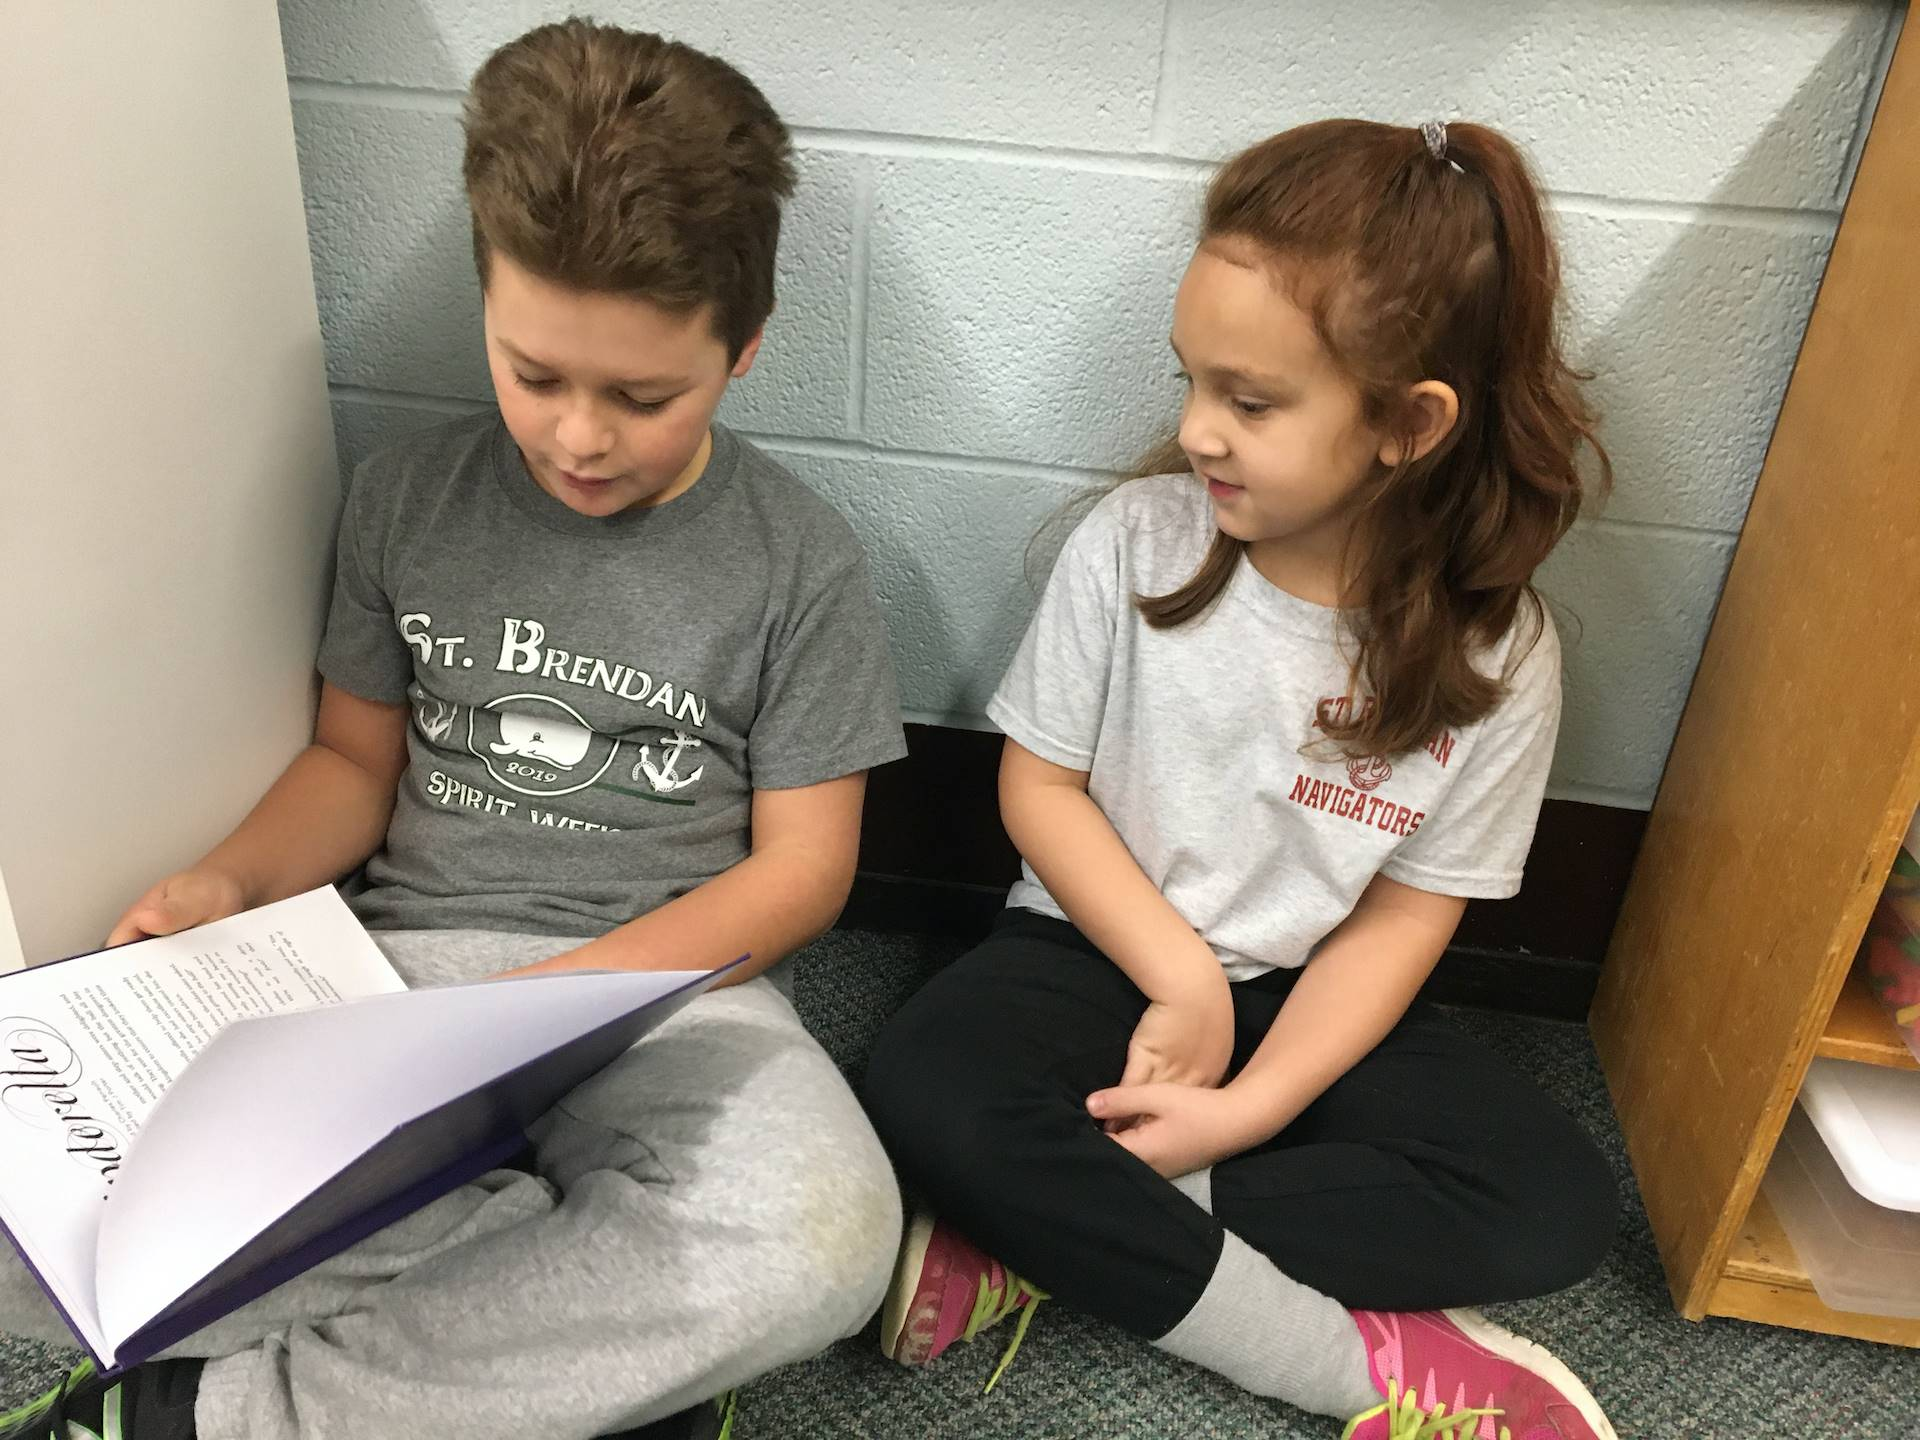 buddy classes partner for activities